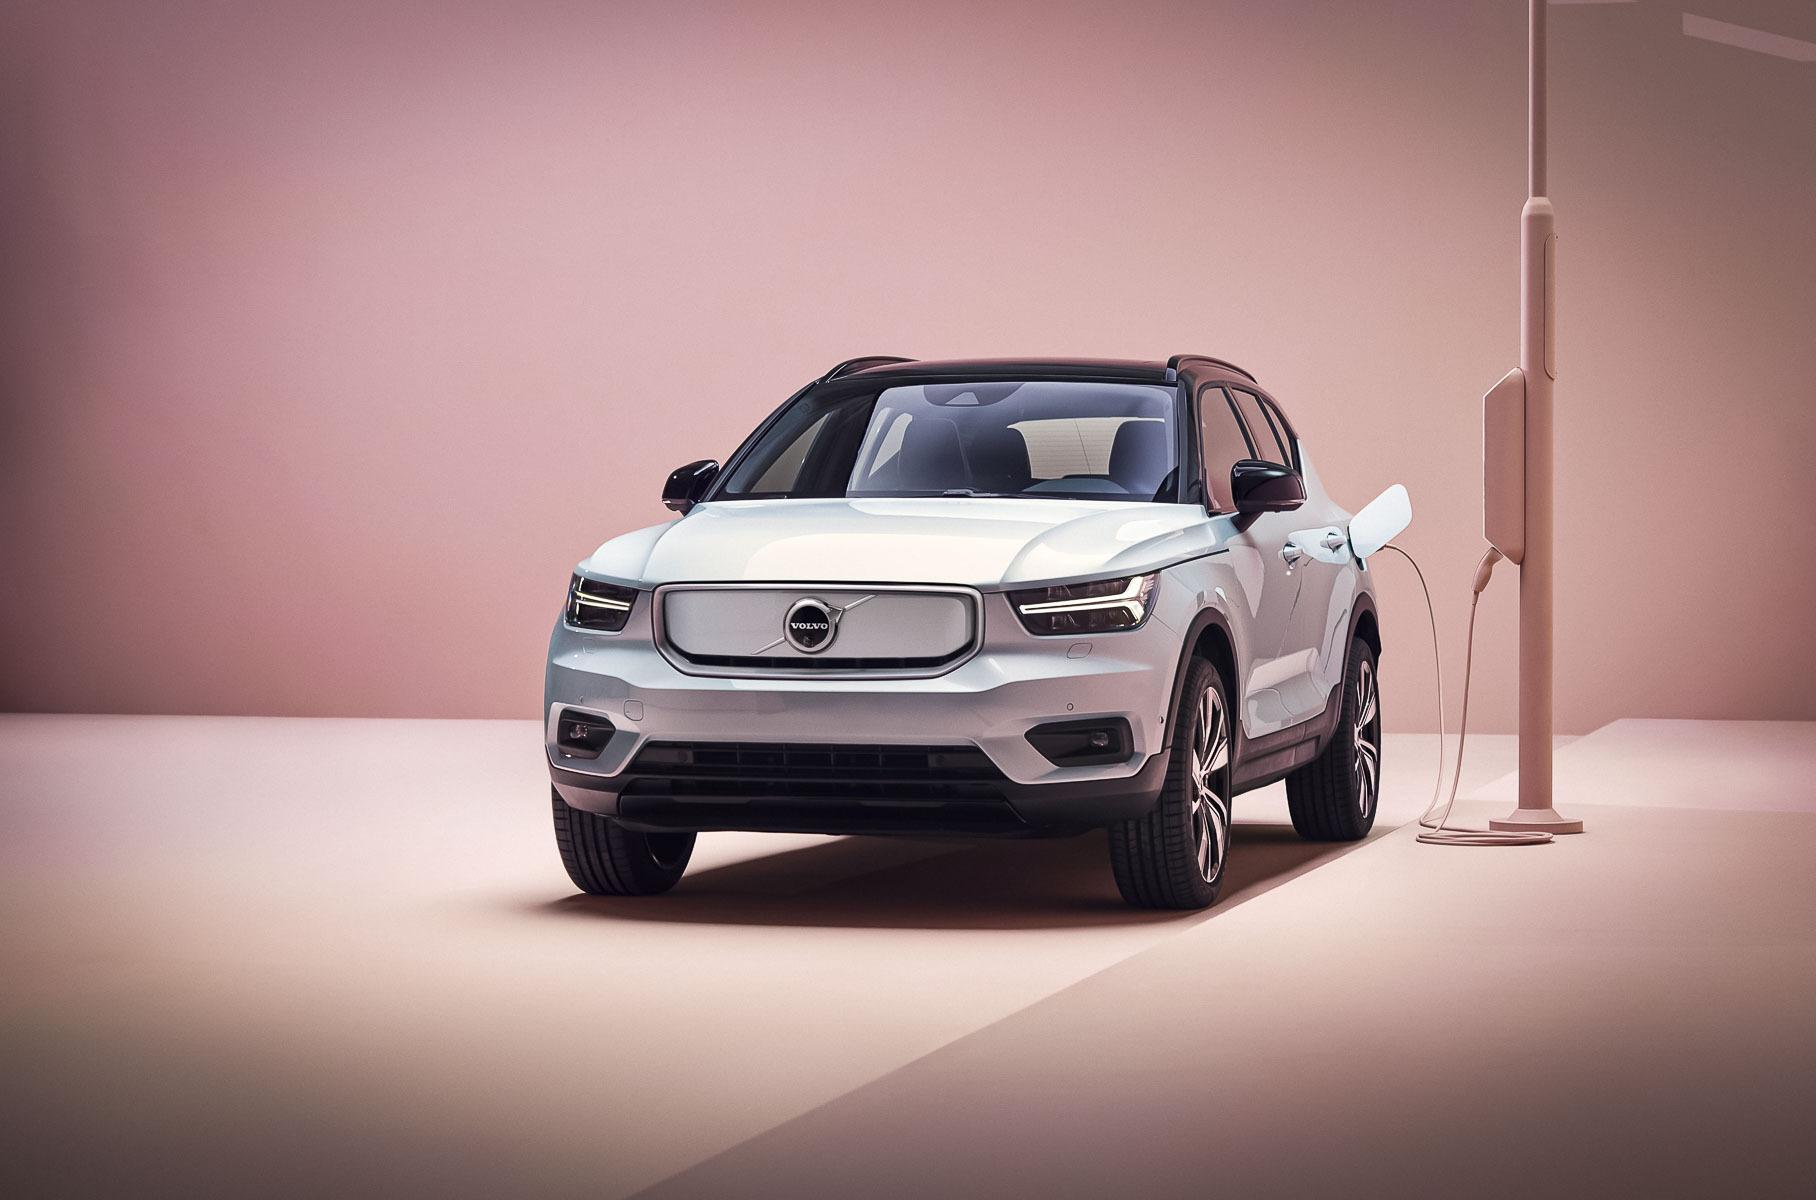 """Volvo Cars CEO Håkan Samuelsson said in an interview that the company would switch to producing and selling electric cars only by the year 2030. He went on to call internal combustion engines """"tech of the past"""" and supported their Europe-wide ban."""